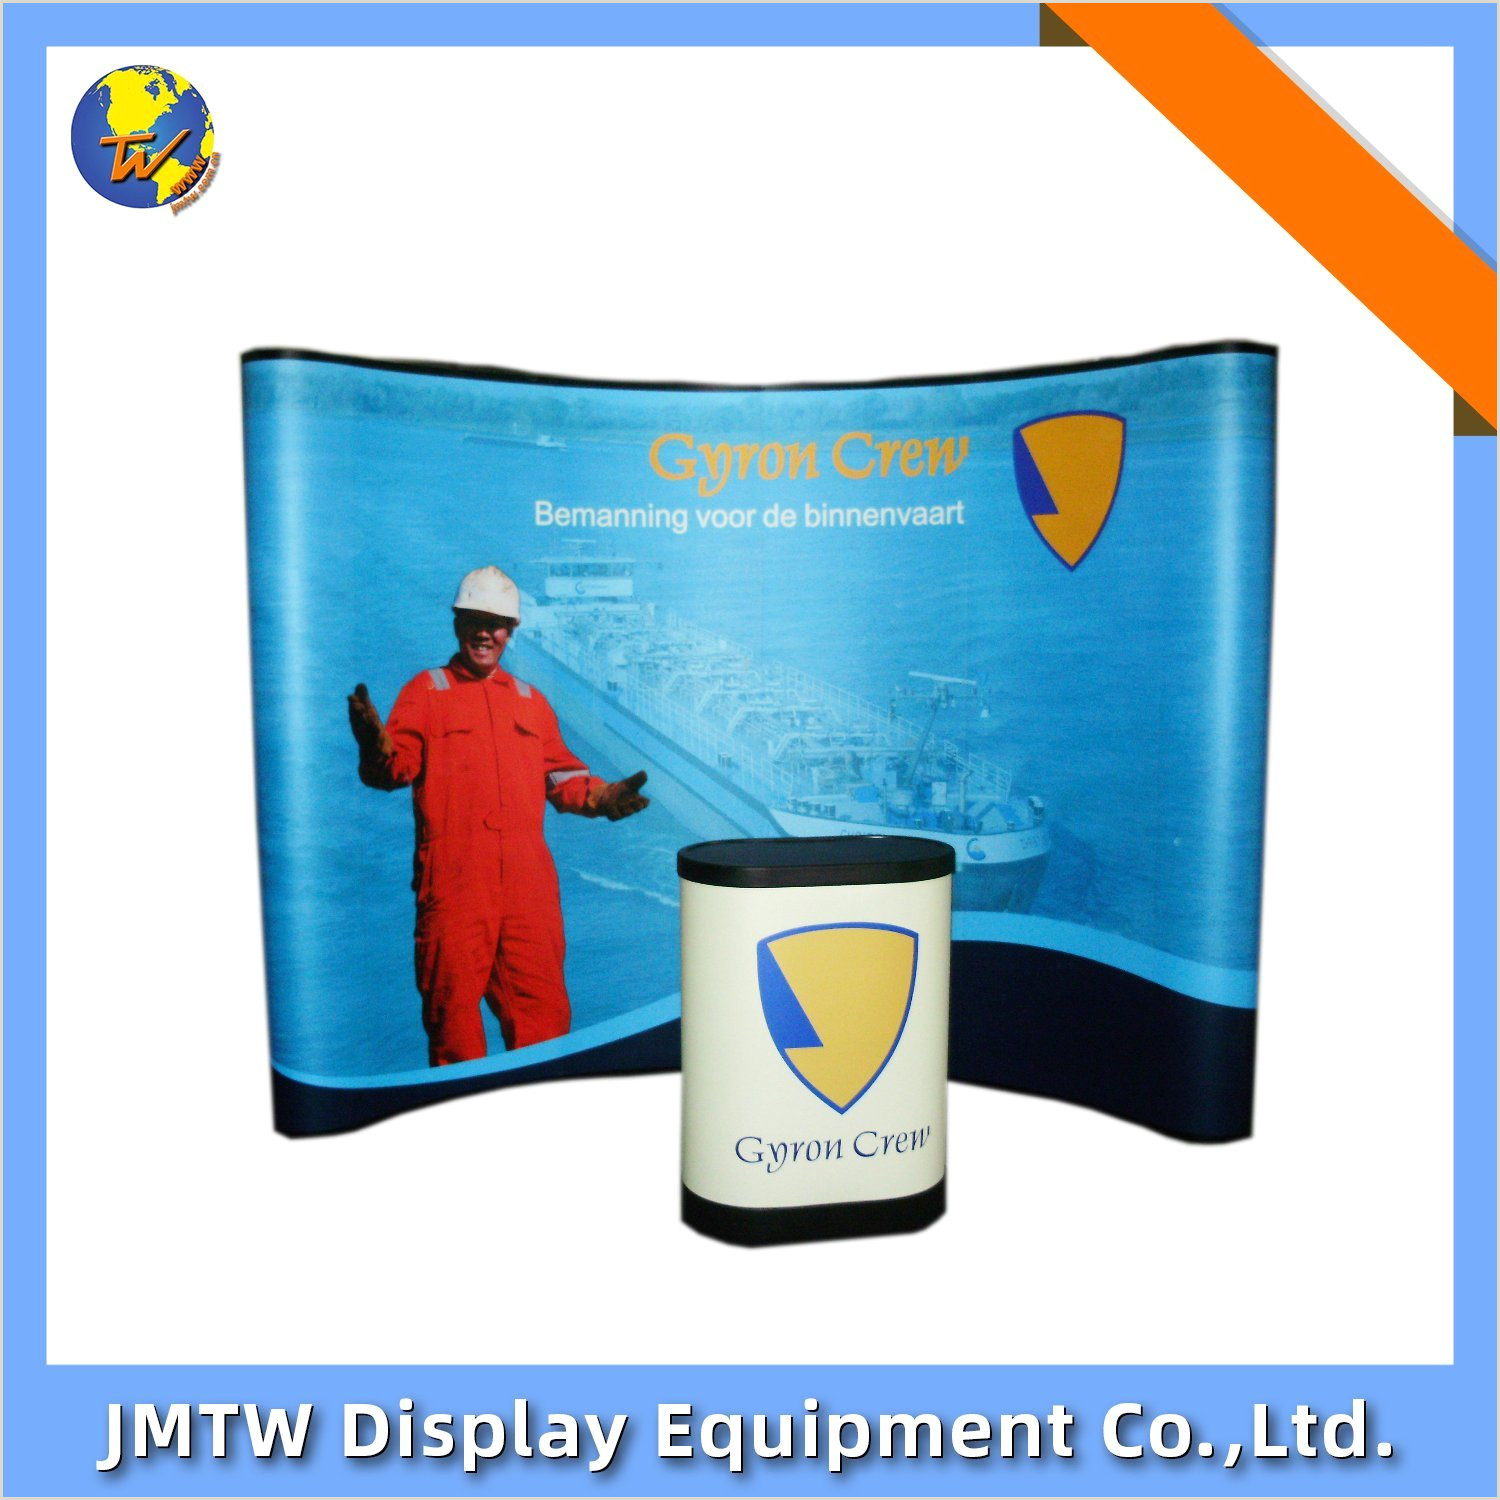 Portable Banner Displays [hot Item] Portable Durable Display Booth Pop Up Banner